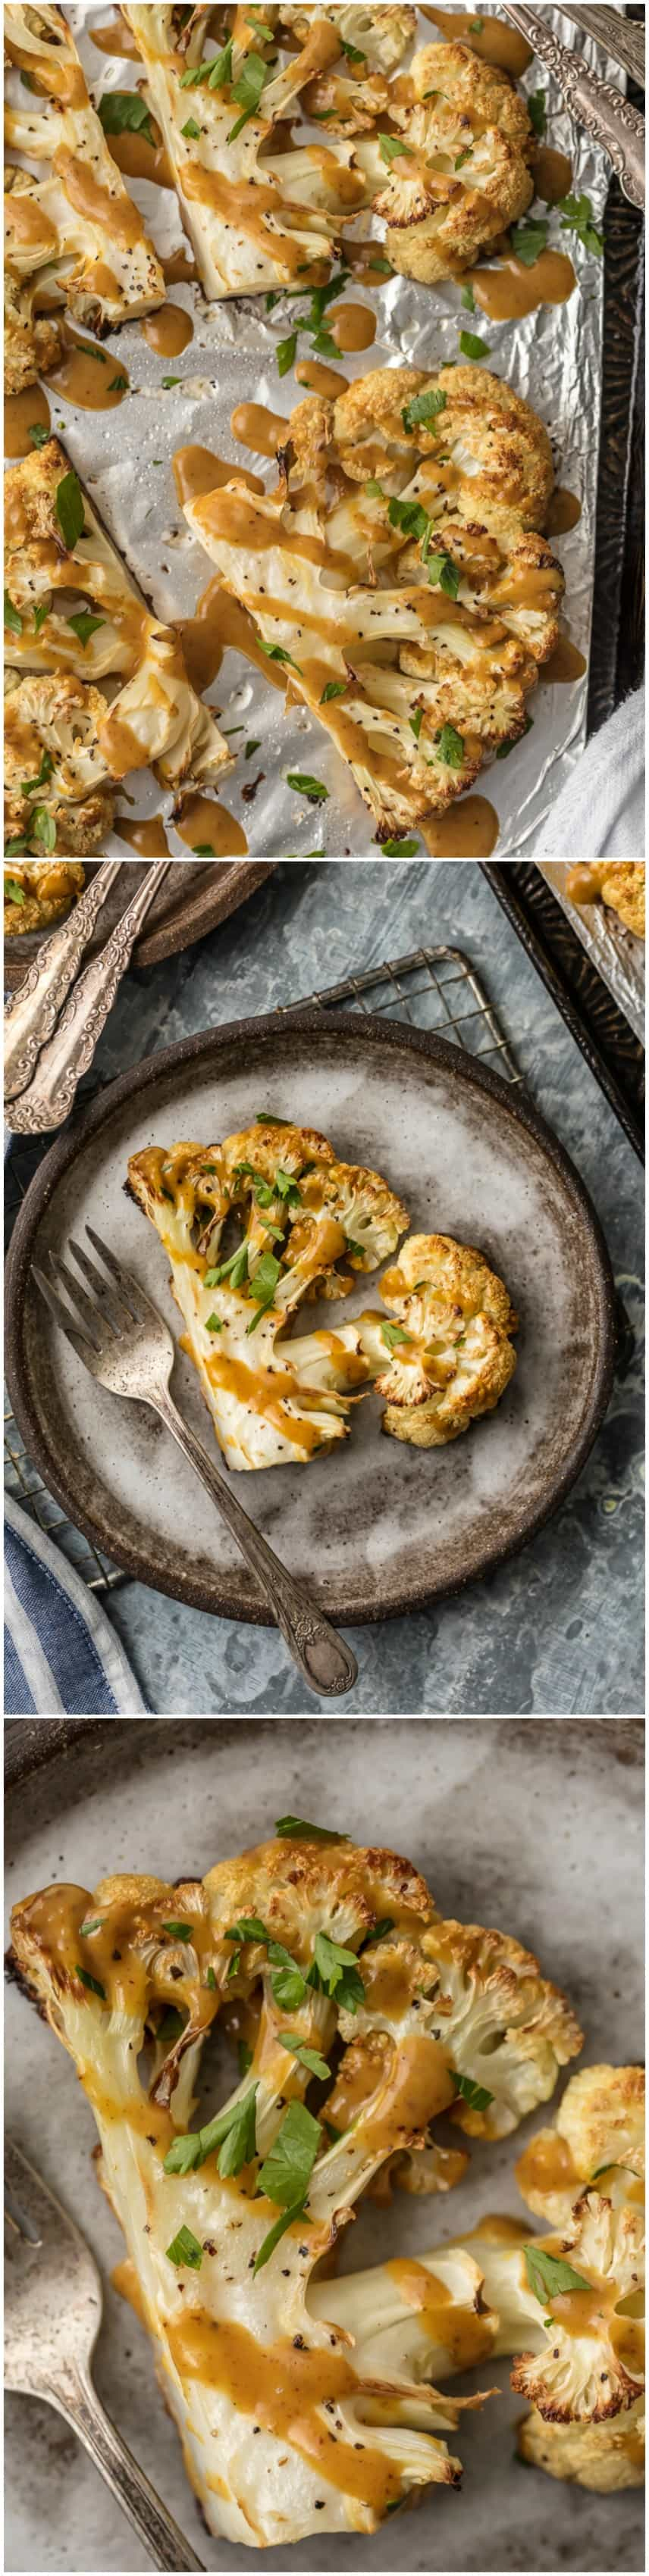 These THAI PEANUT CAULIFLOWER STEAKS are just the right amount of creamy, spicy, and tasty. This easy vegetarian meal or side is always a hit. SO MUCH FLAVOR!